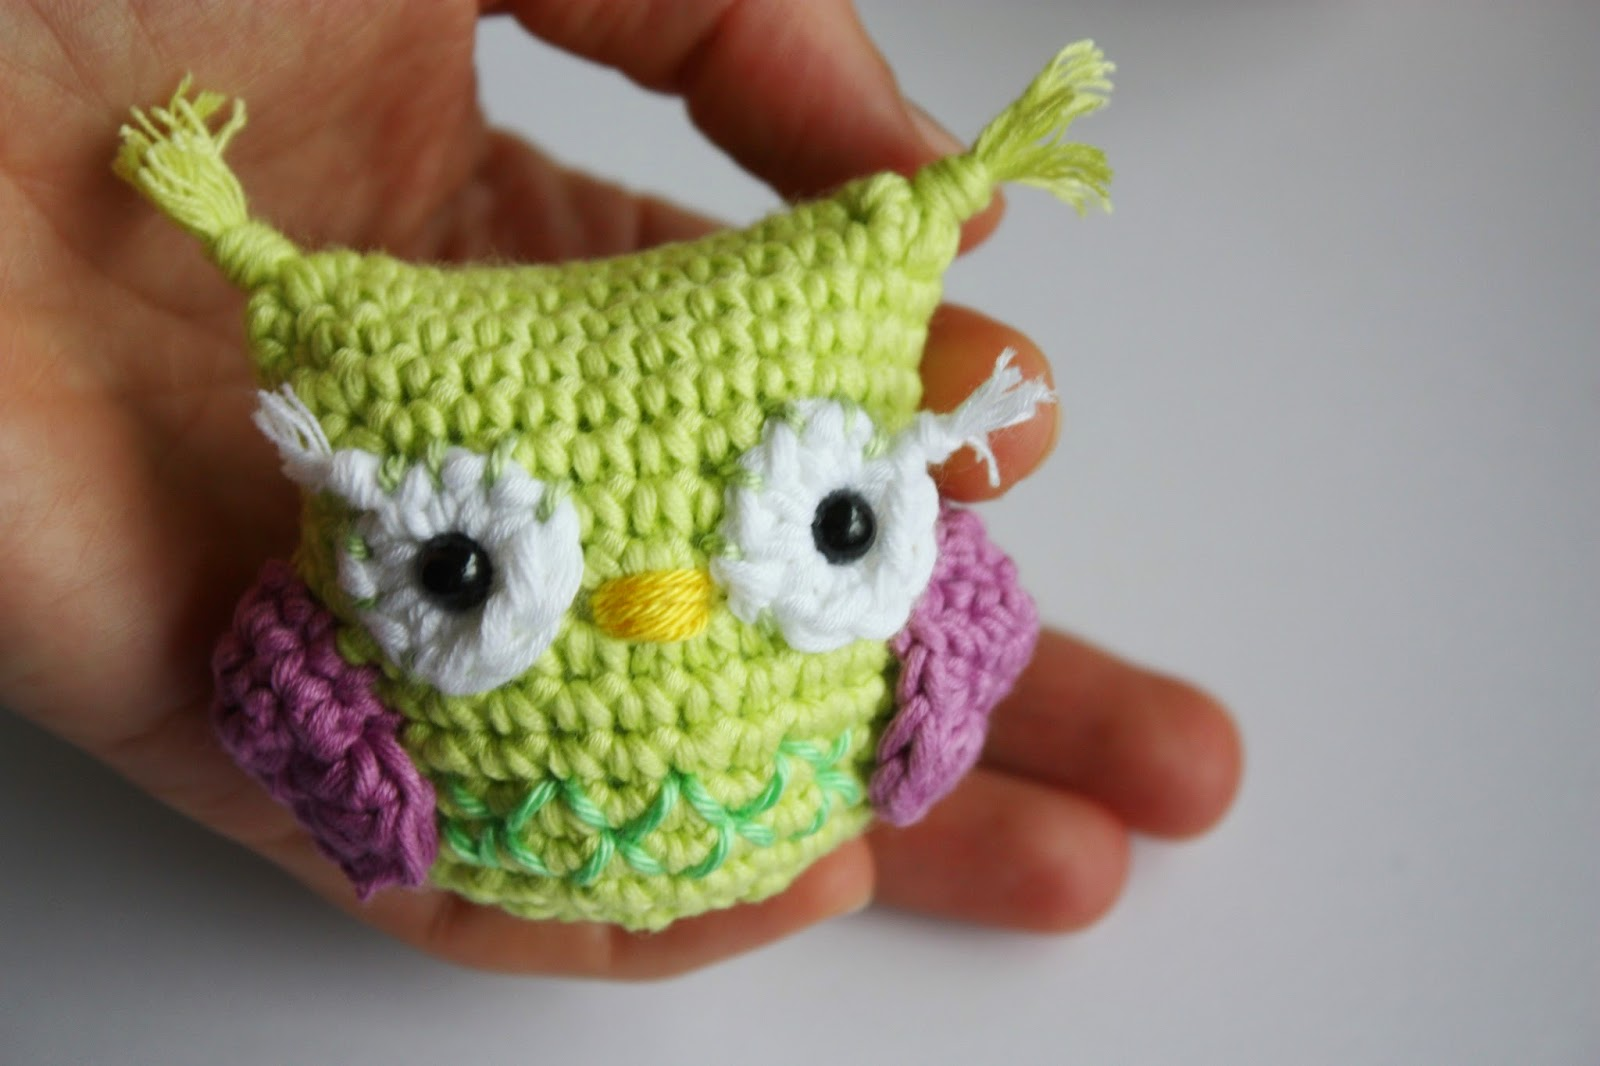 New: Amigurumi Owl Pattern in process - Free Amigurumi Pattern